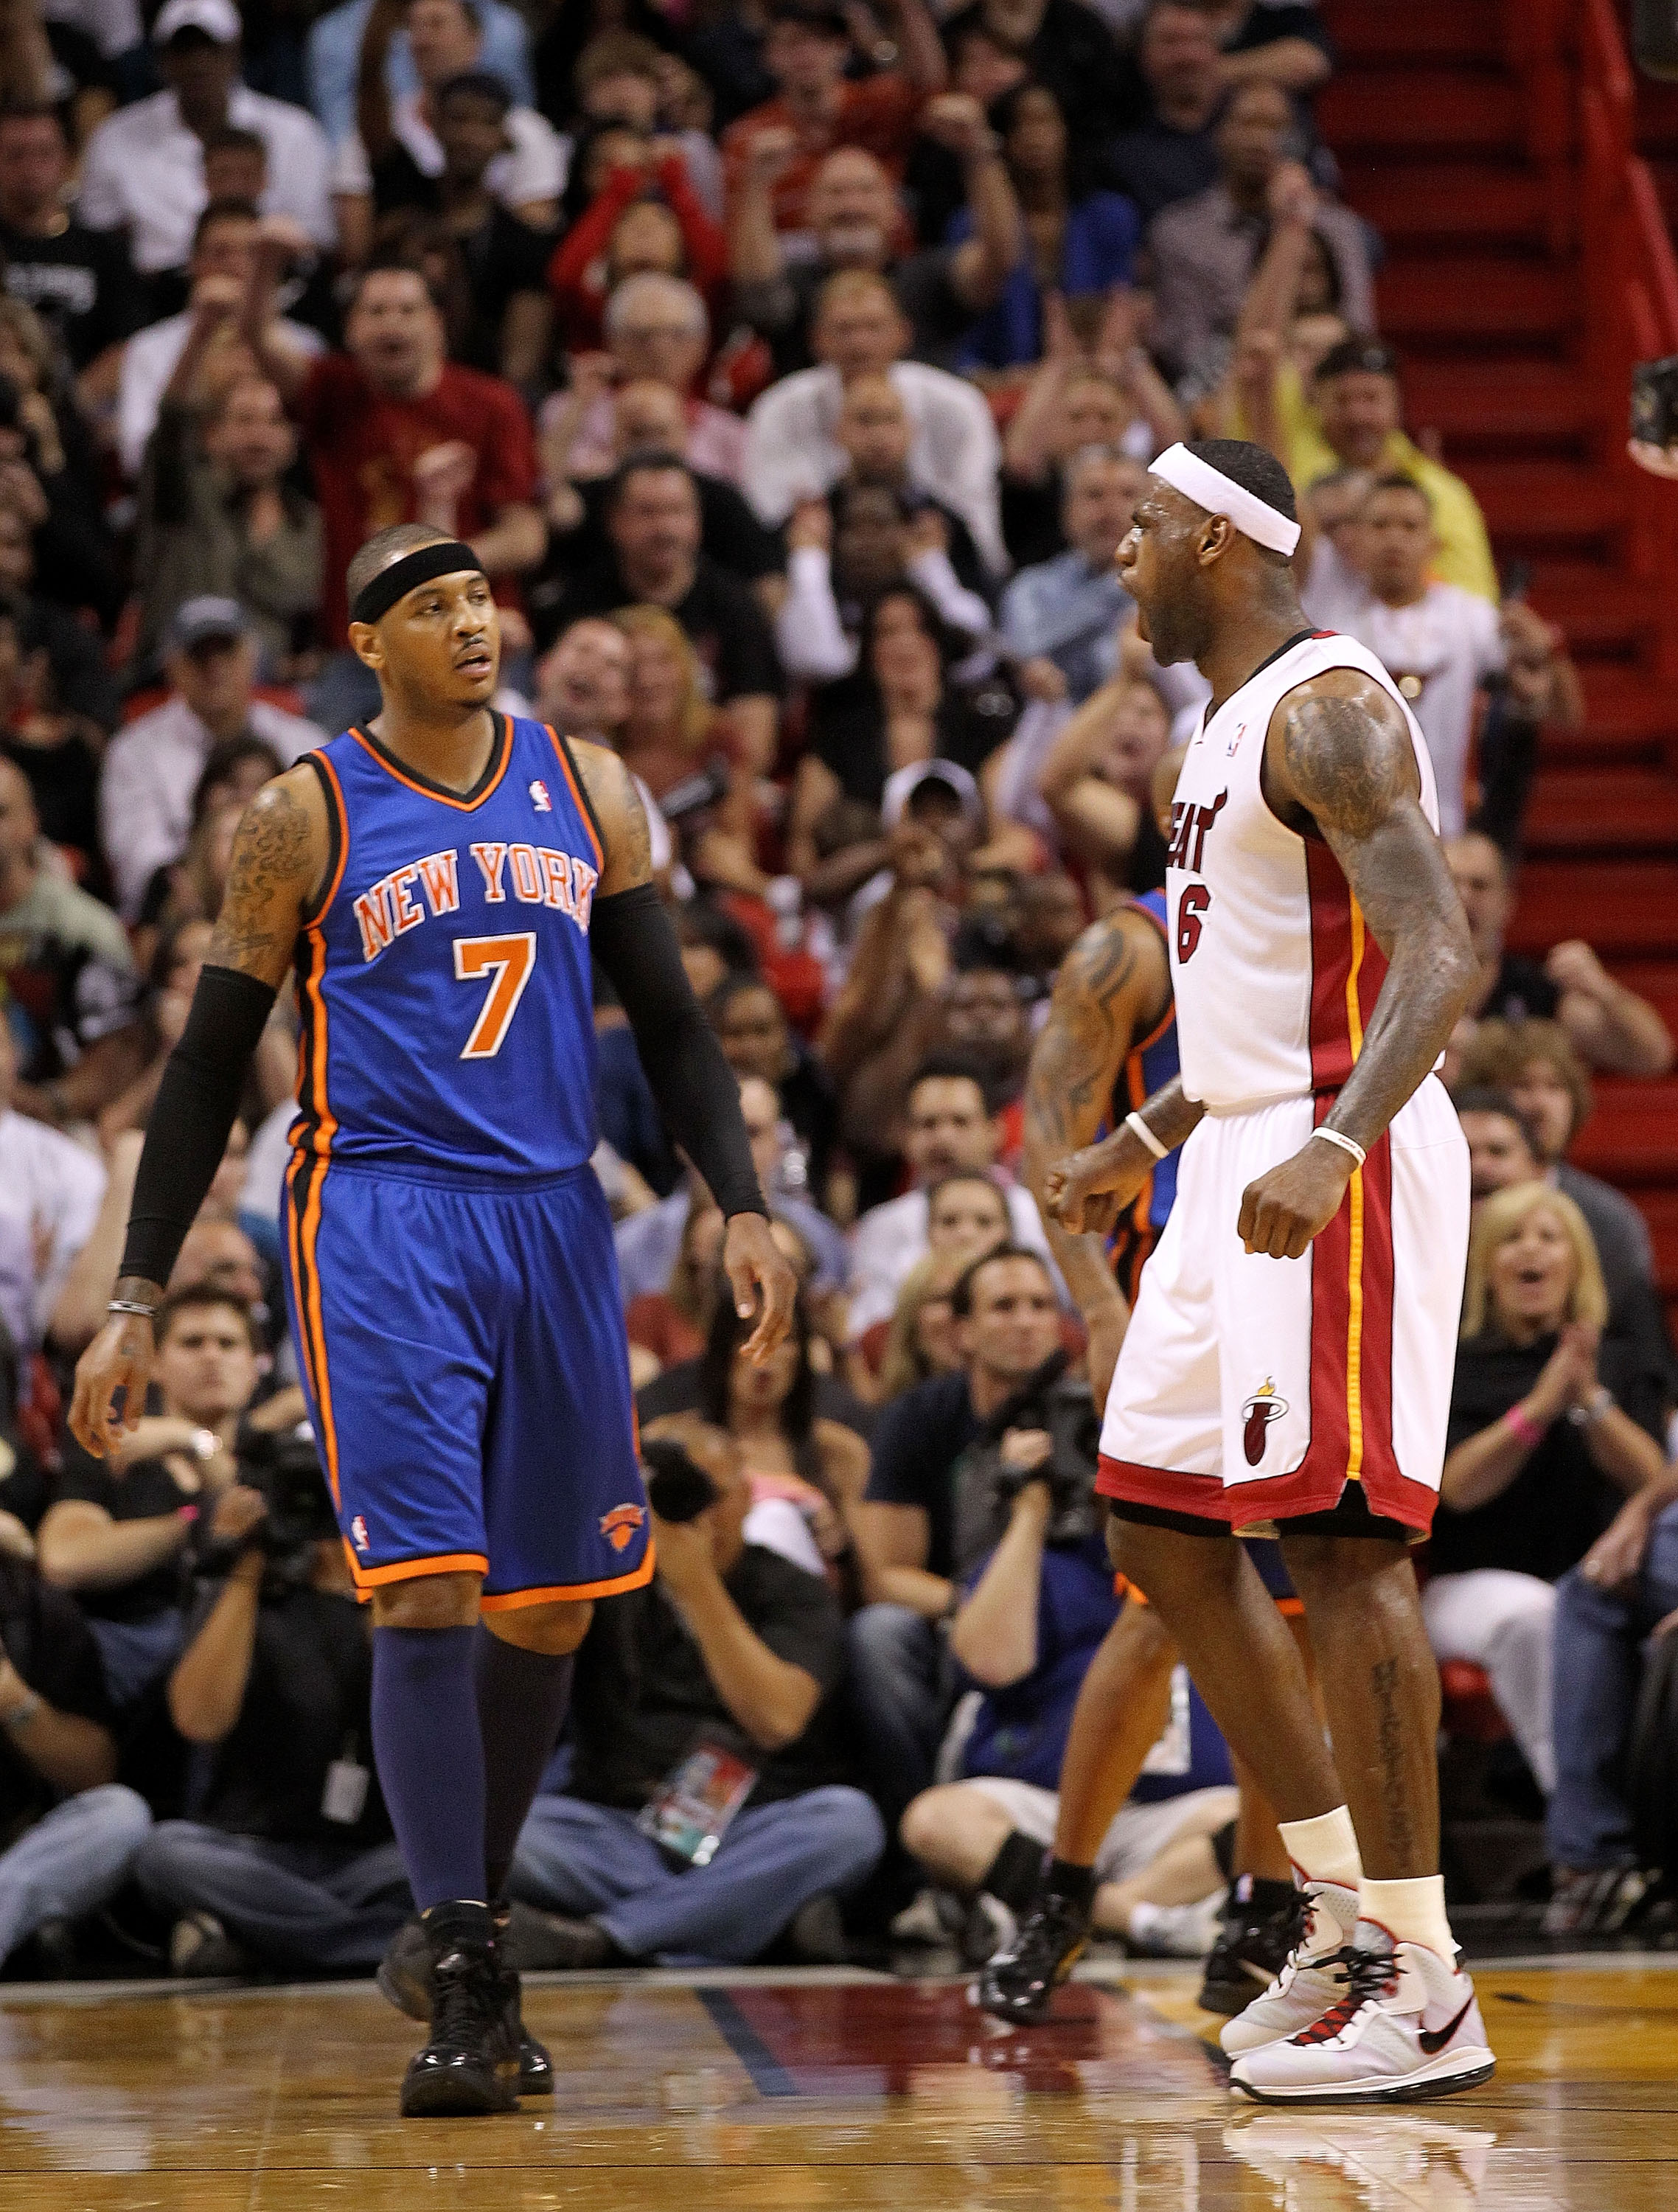 MIAMI, FL - FEBRUARY 27: LeBron James #6 of the Miami Heat reacts to a shot as Carmelo Anthony #7 of the New York Knicks looks on during a game at American Airlines Arena on February 27, 2011 in Miami, Florida. NOTE TO USER: User expressly acknowledges an